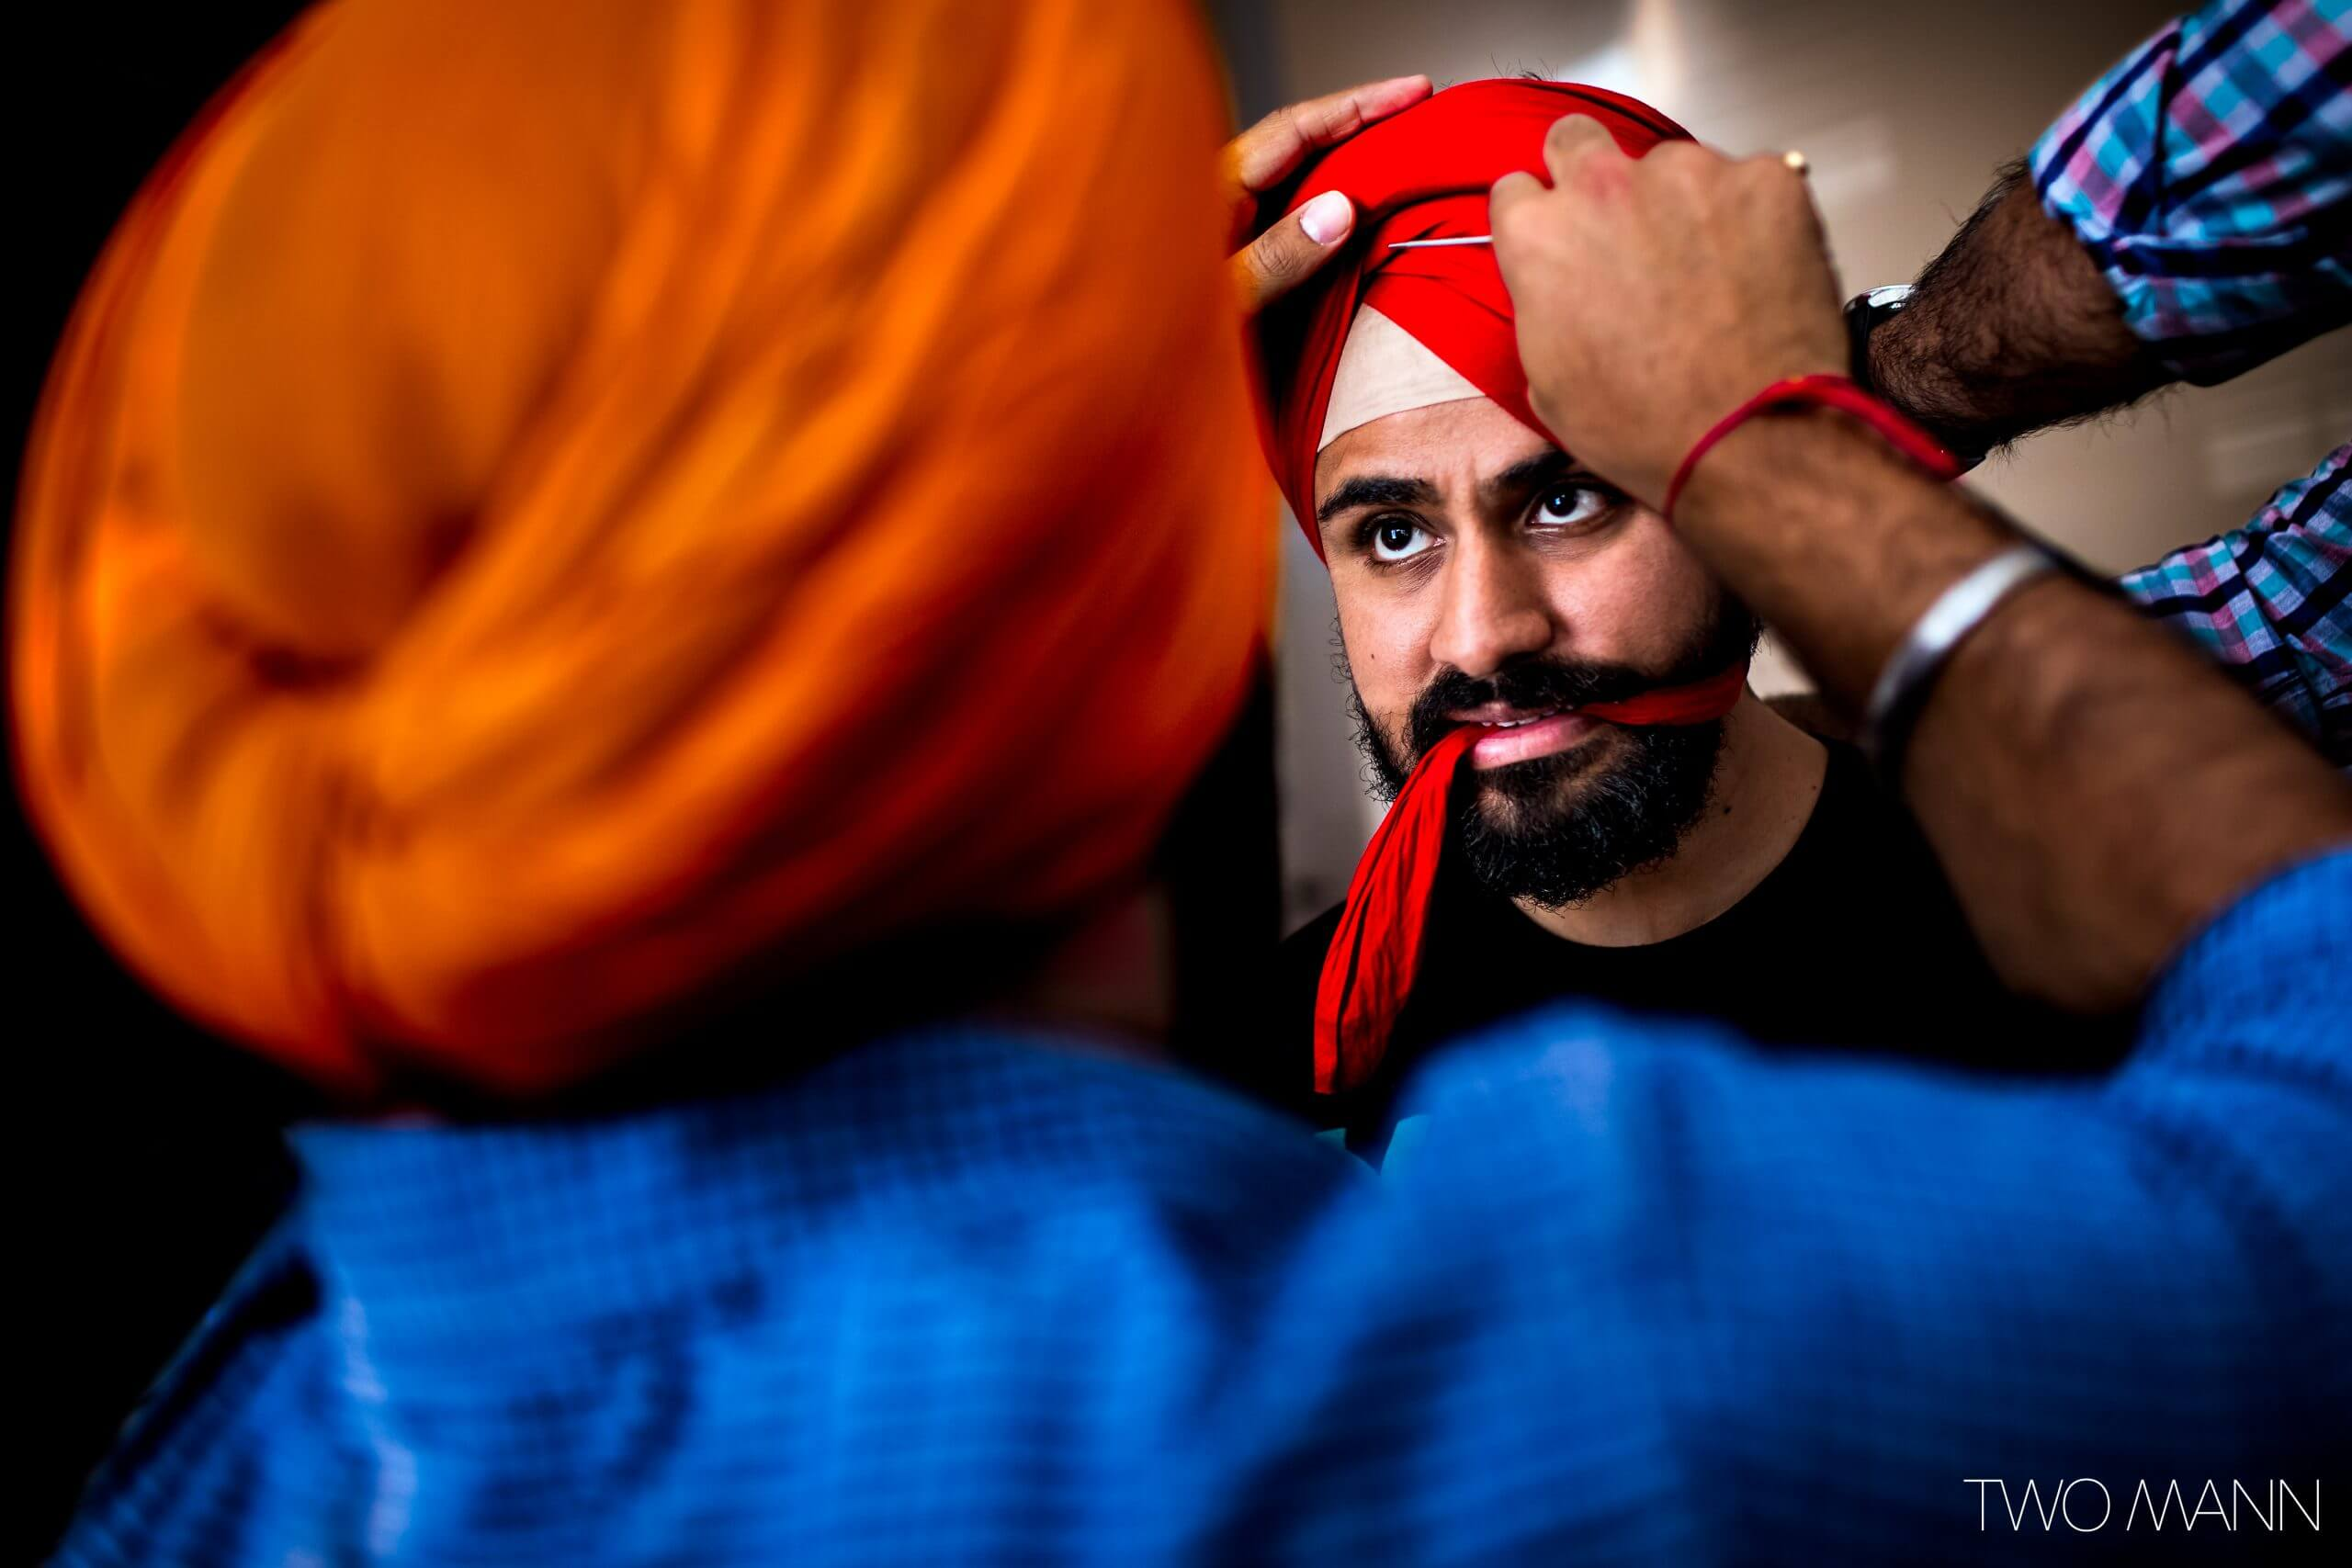 friends helping an Indian groom with his wedding turban